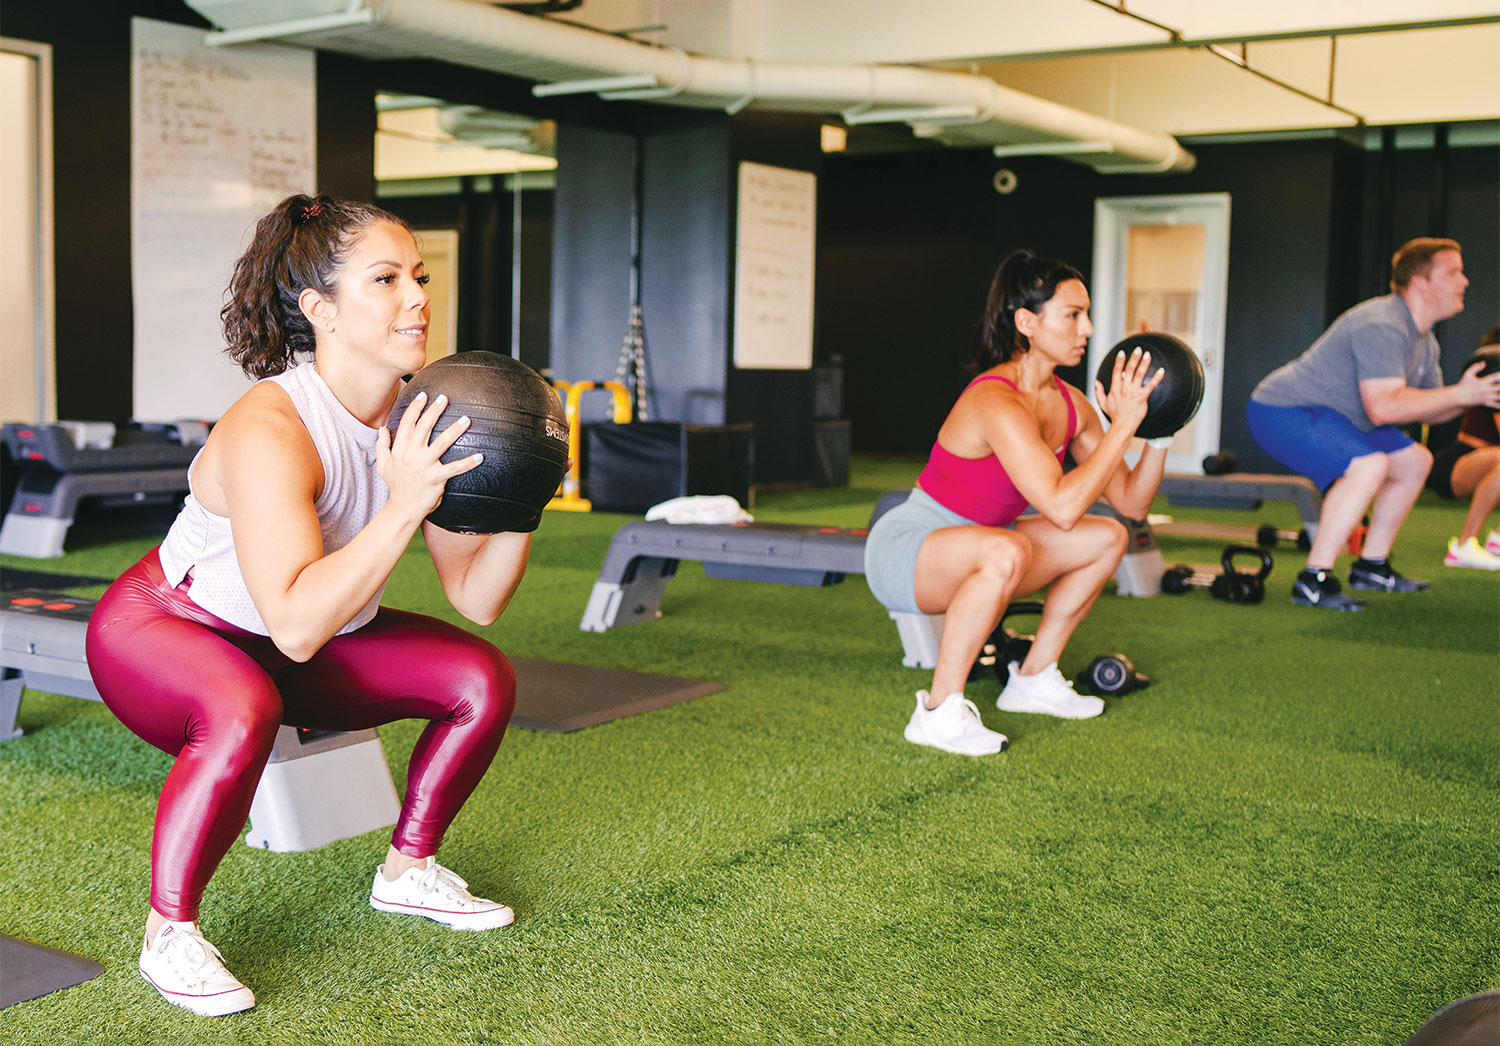 Chelsea Piers Members taking a Group Fitness Class